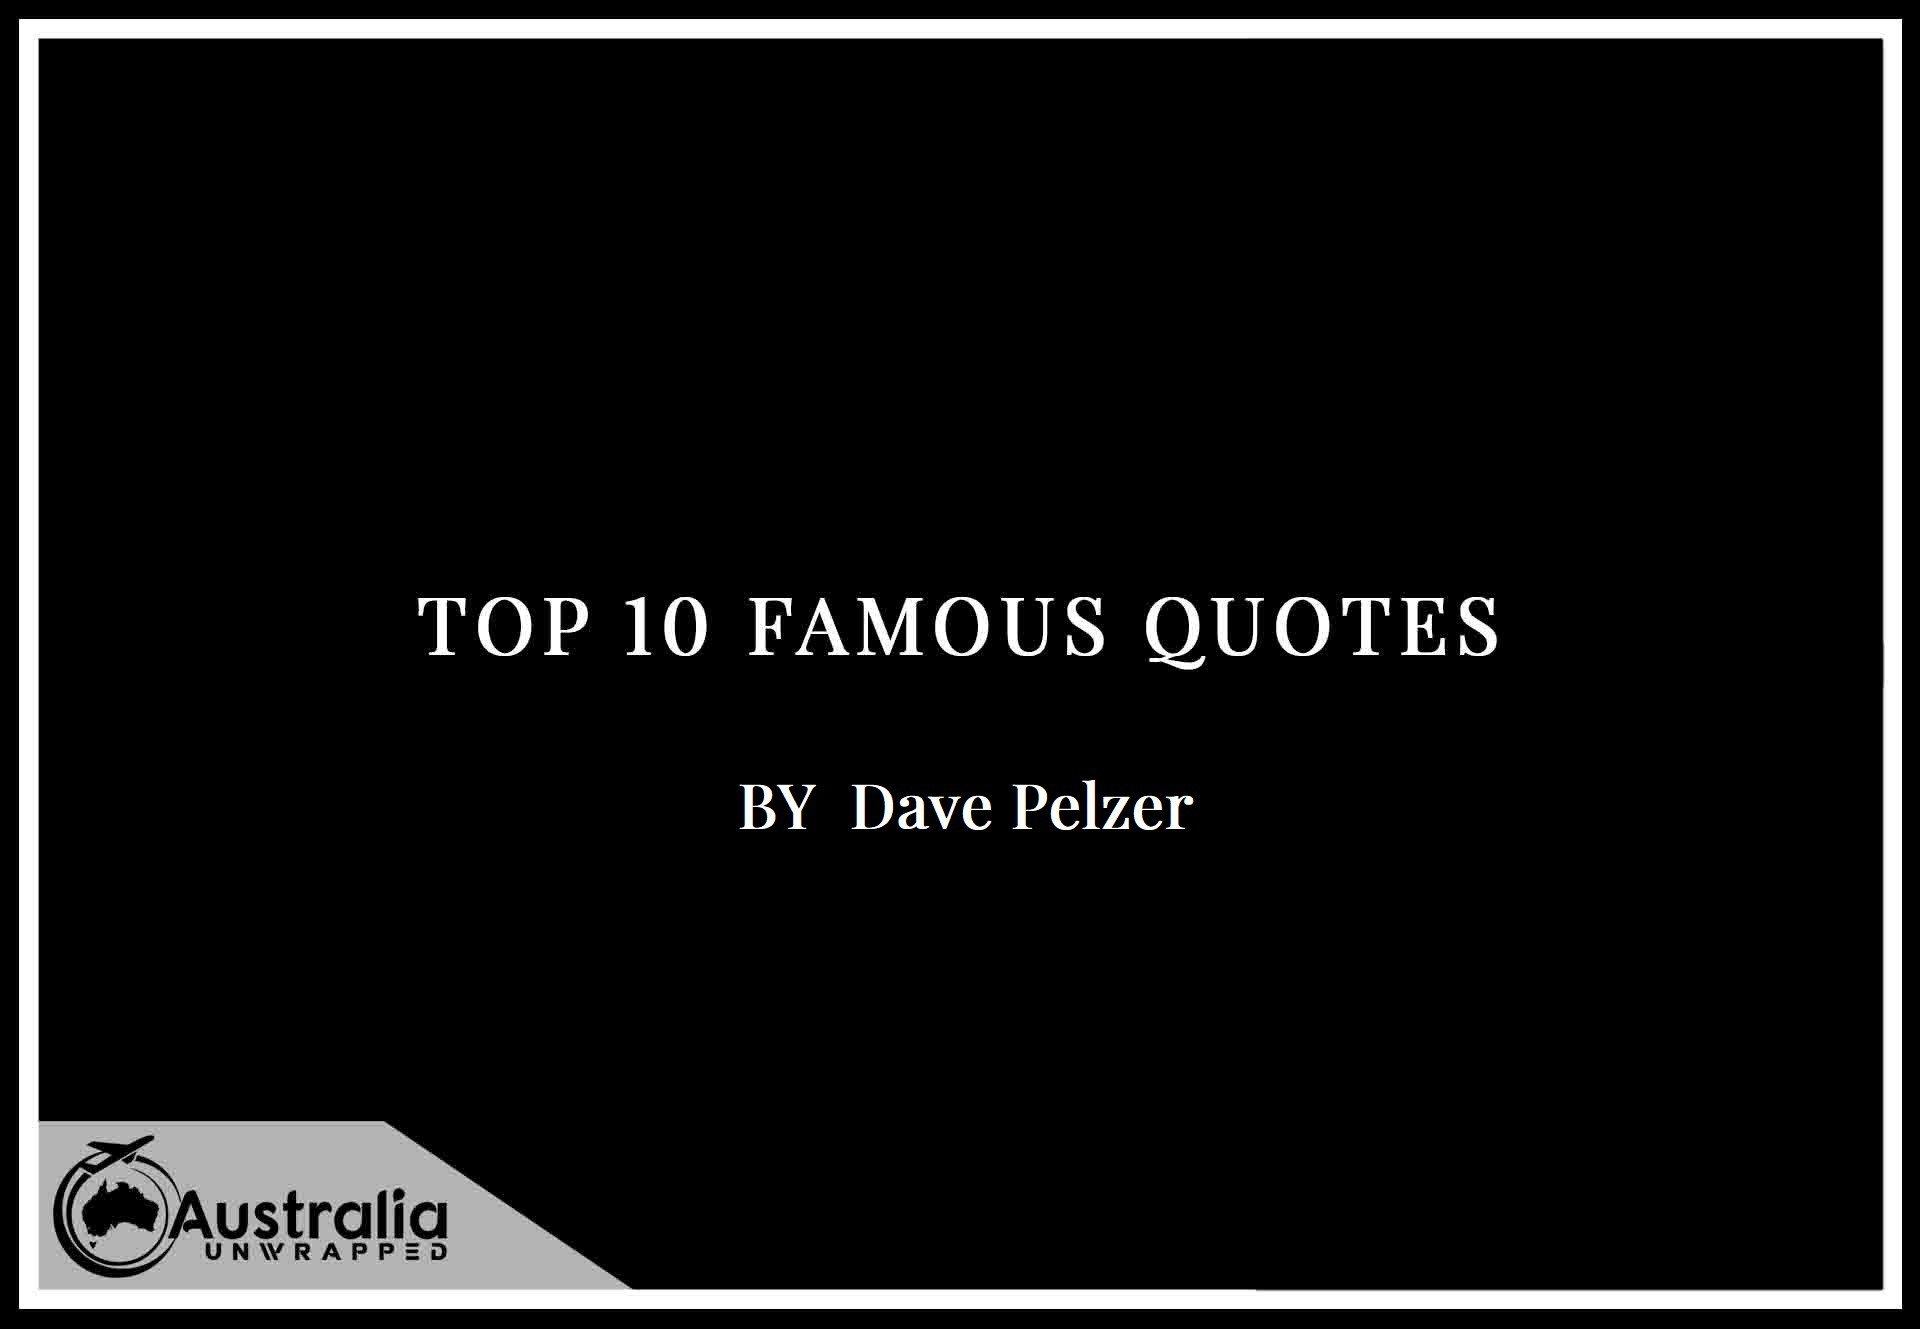 Top 10 Famous Quotes by Author Dave Pelzer